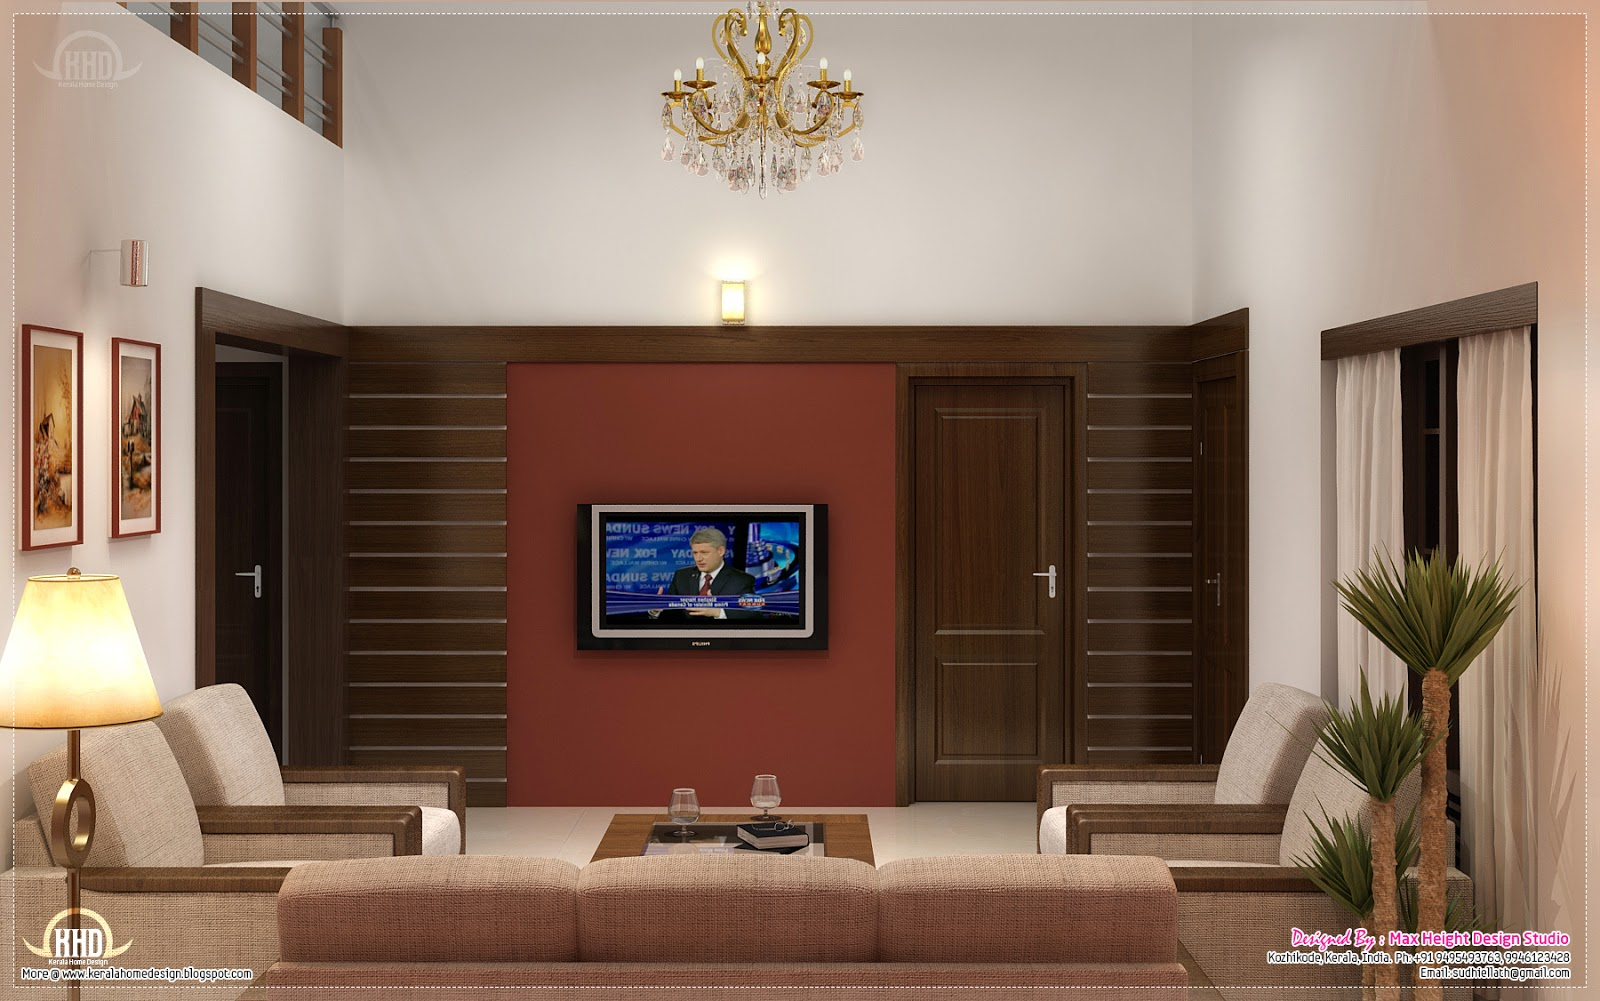 Home interior design ideas home kerala plans for Room design of house